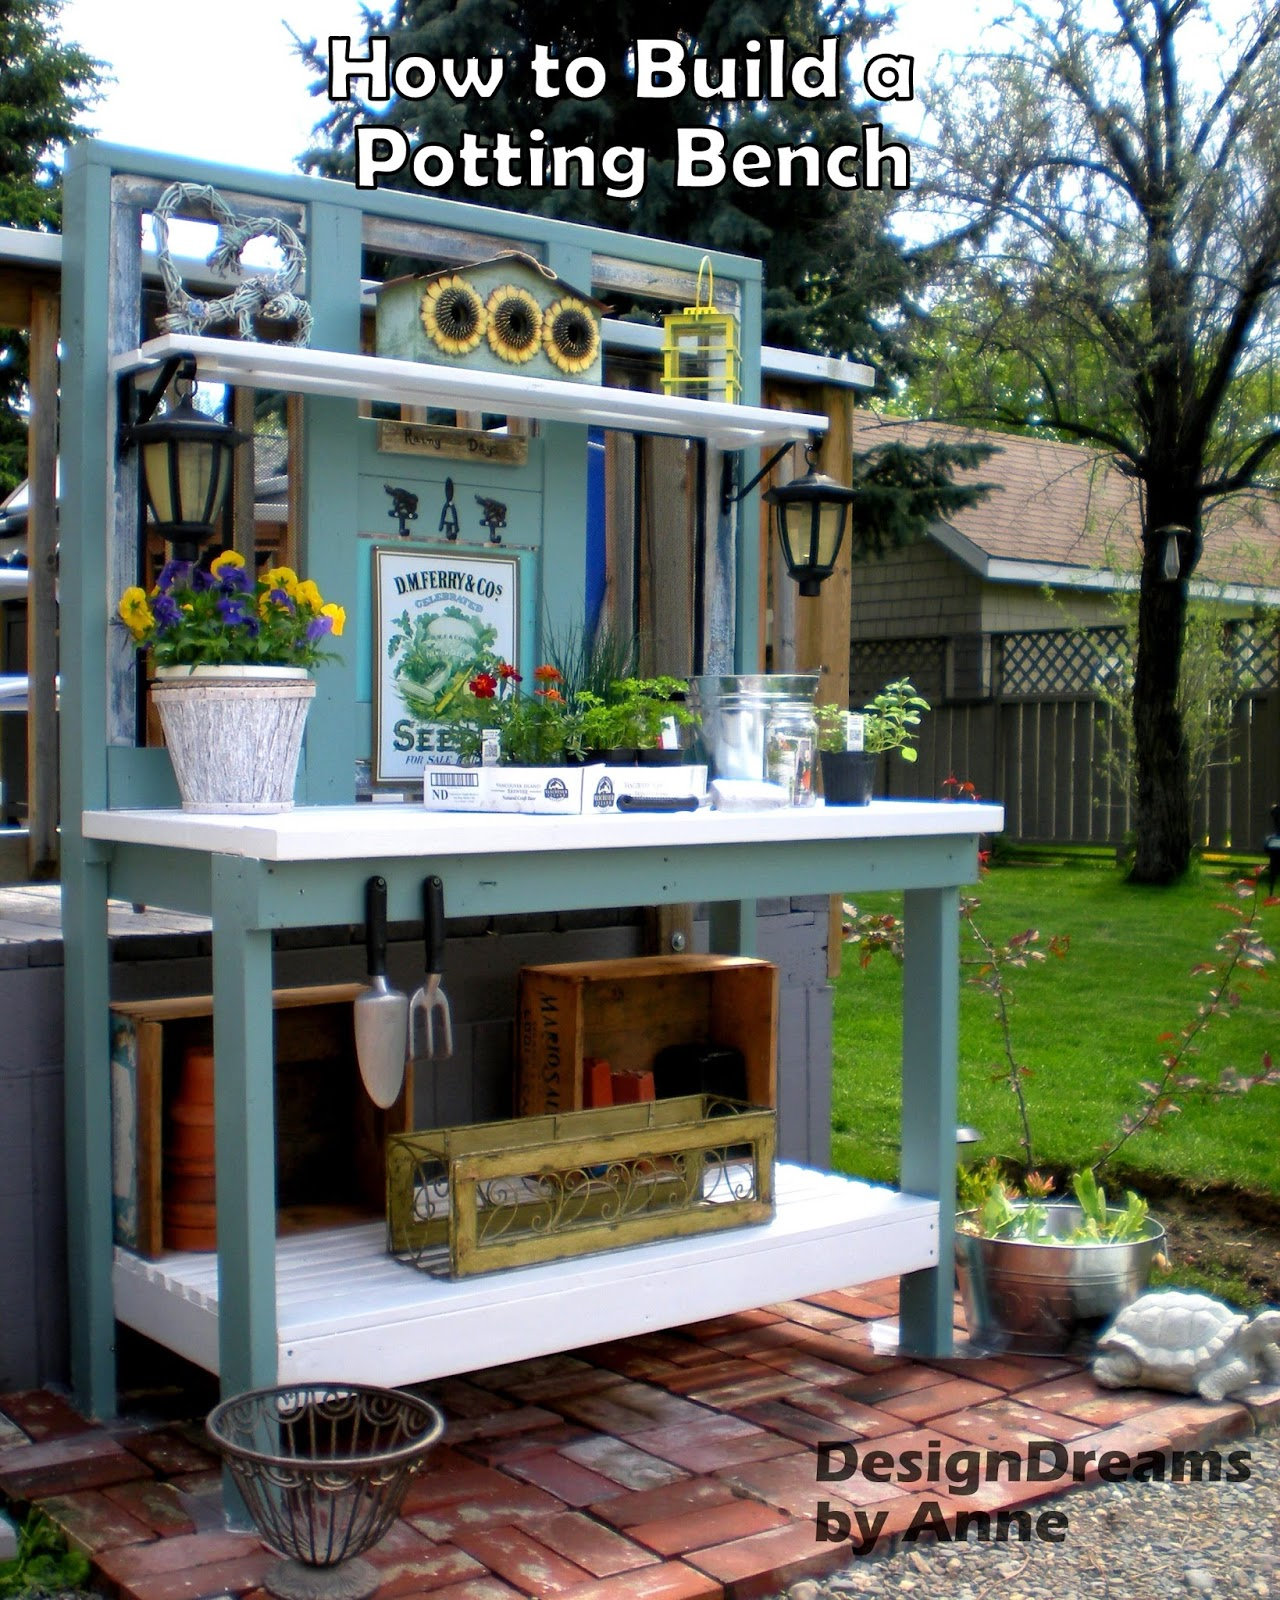 Gardening Bench Plans Part - 41: A Few Weeks Ago, I Dragged My Little Potting Bench Inside To Use In My  Mudroom. Since Iu0027m Beginning To Landscape My Property Now (finally!), I  Needed A New ...